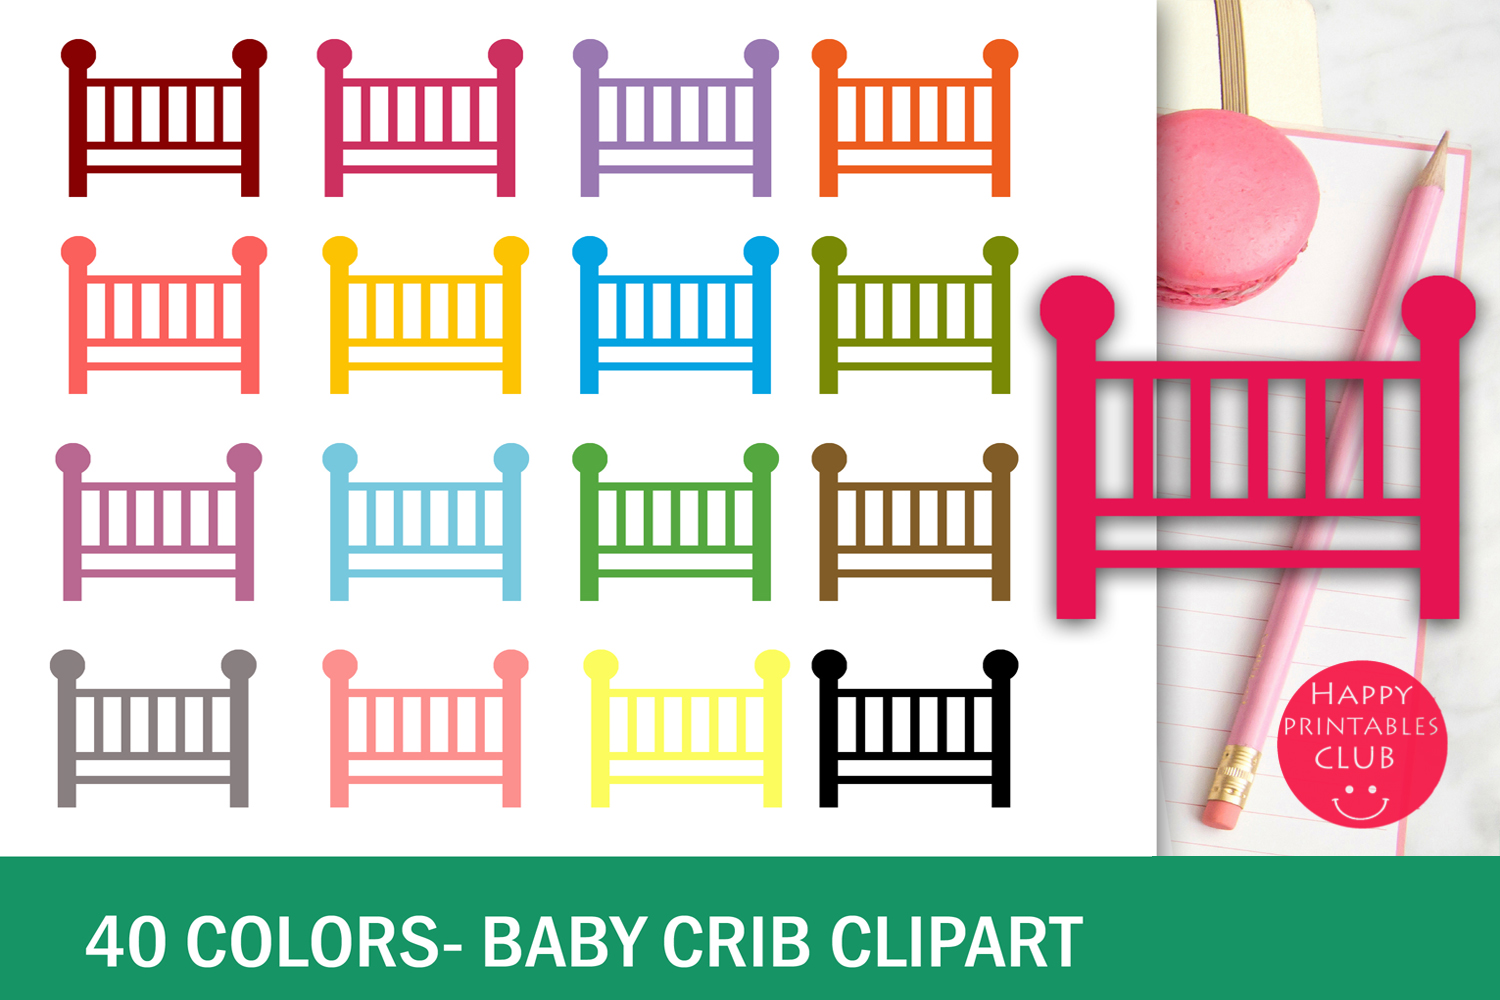 40 Baby Crib Clipart-Colorful Baby Crib Transparent Images example image 2